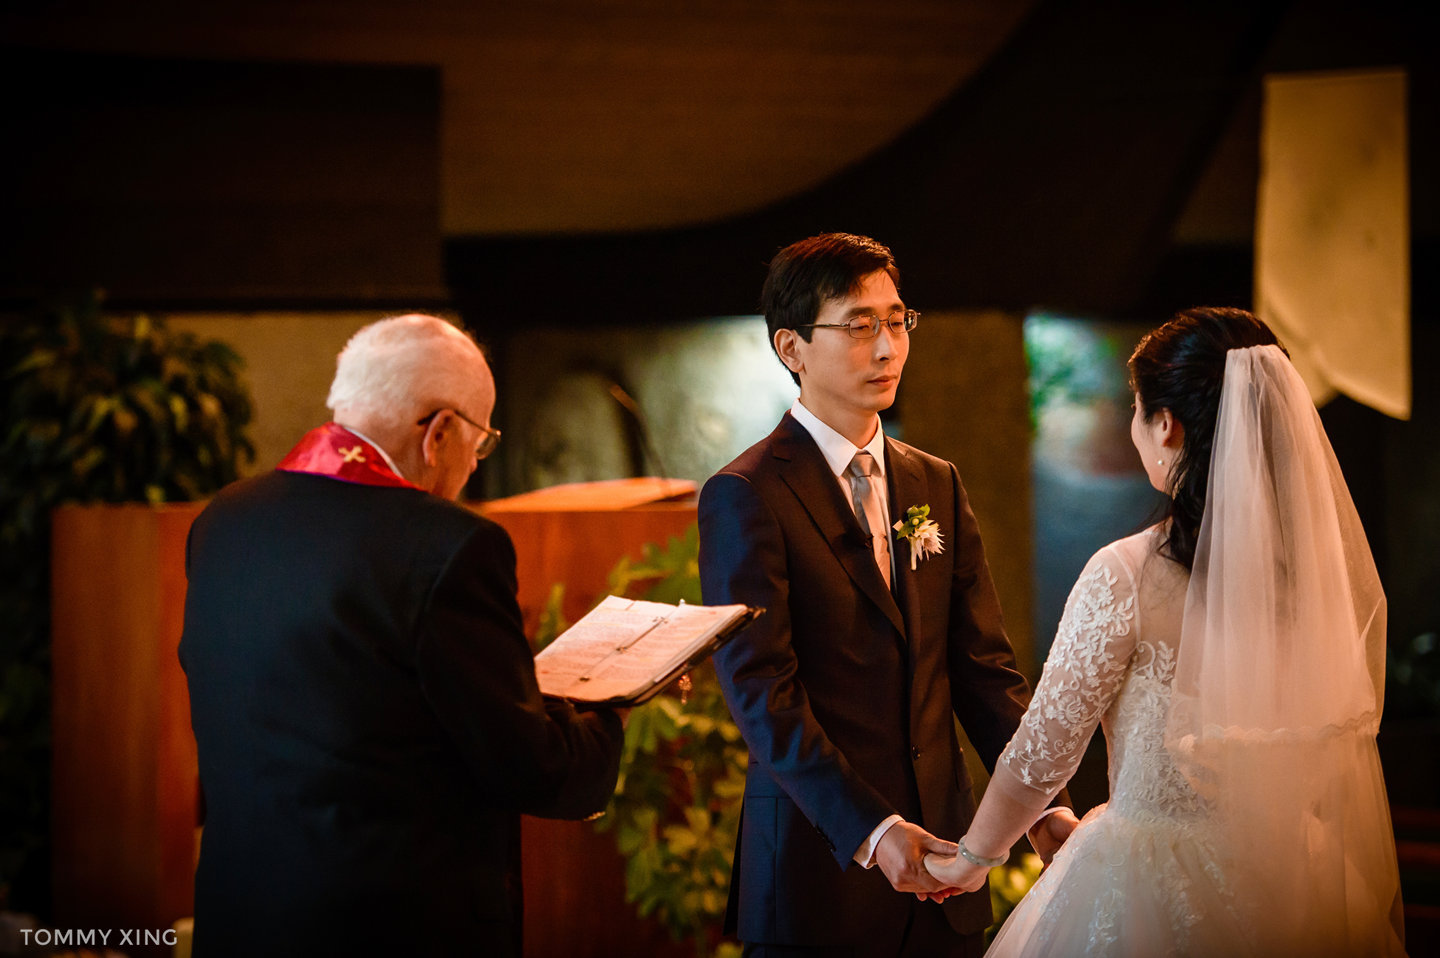 San Francisco Wedding Photography Valley Presbyterian Church WEDDING Tommy Xing Photography 洛杉矶旧金山婚礼婚纱照摄影师081.jpg